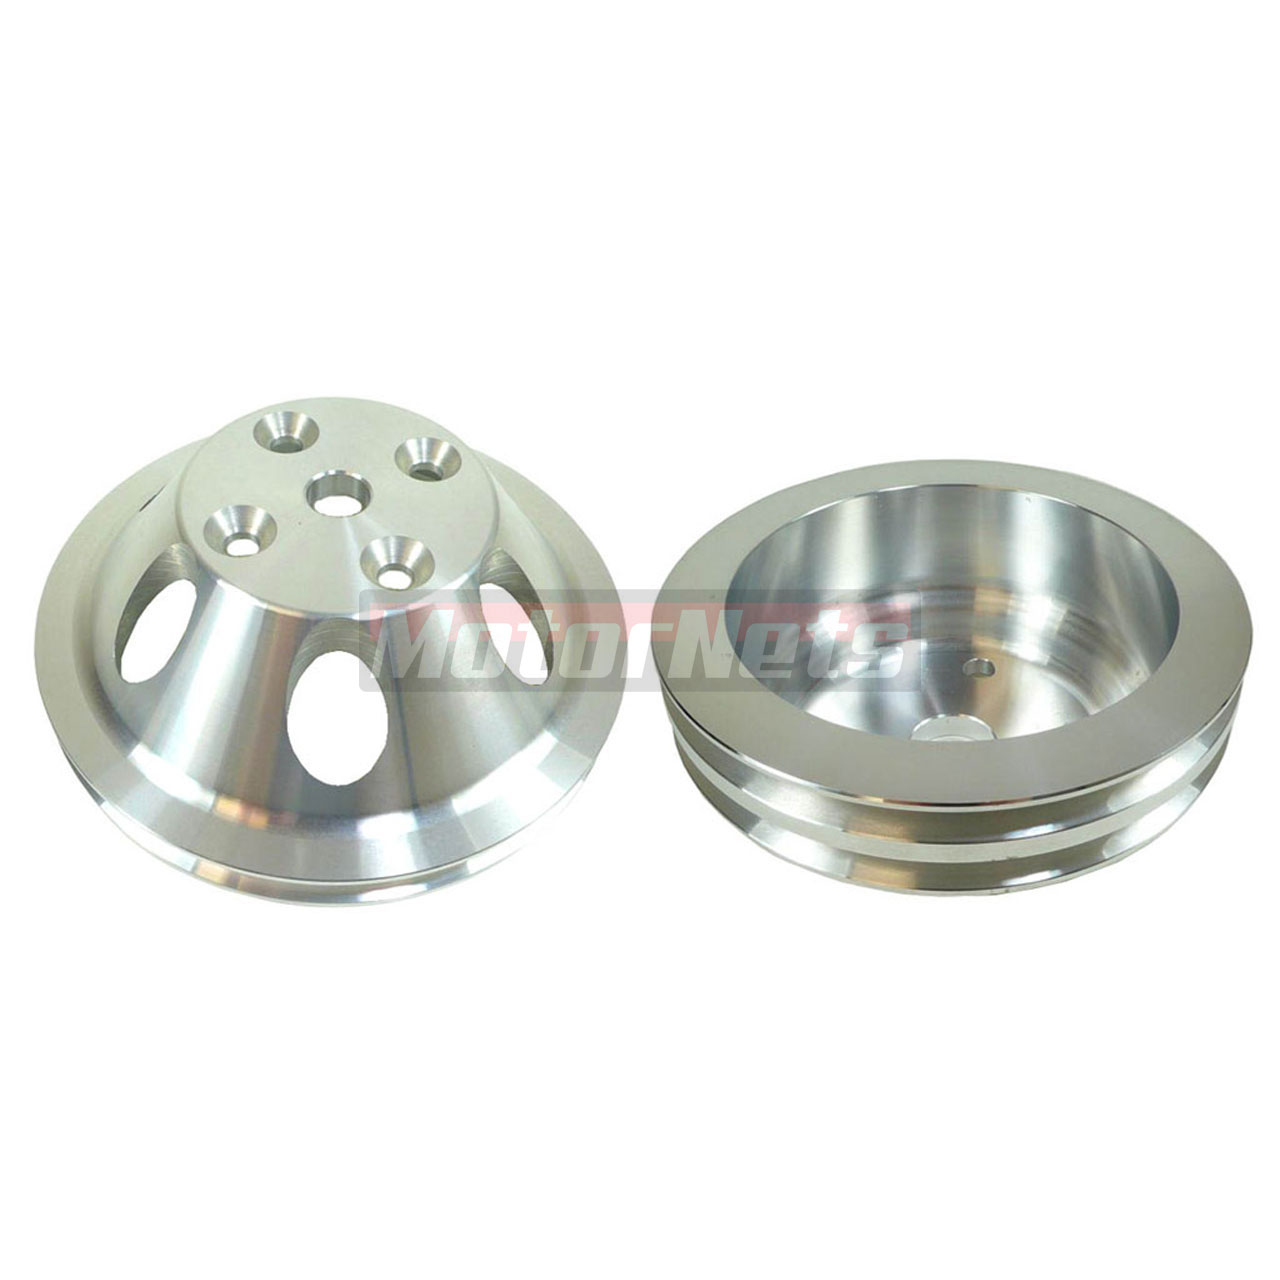 SB Chevy Billet 1Groove Upper 2 Groove Lower LWP Pulley